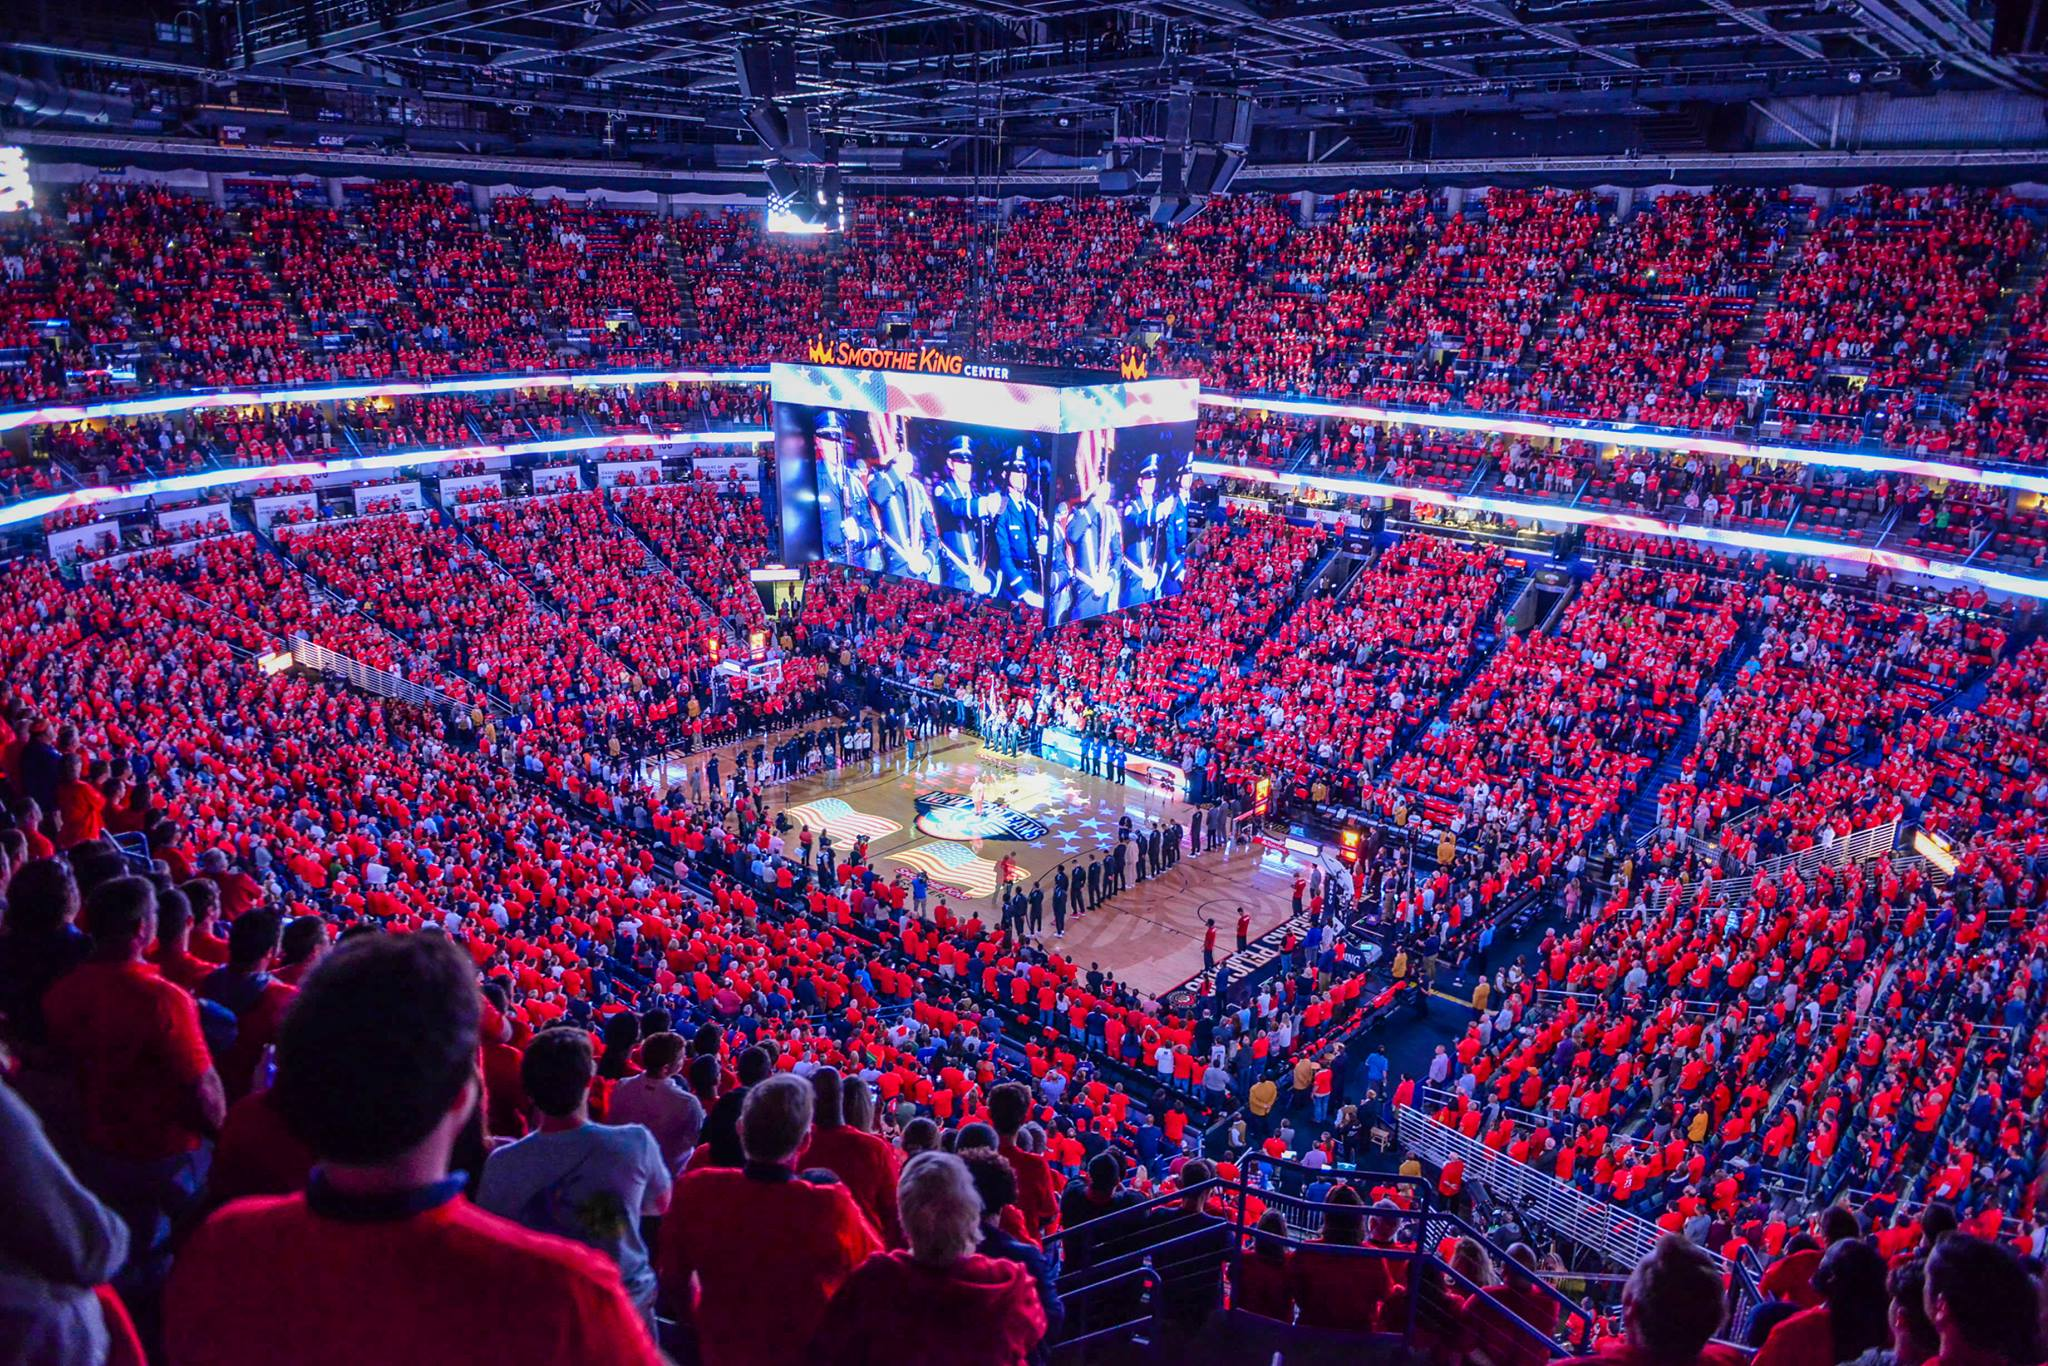 smoothie king center basketball game fun in new orleans